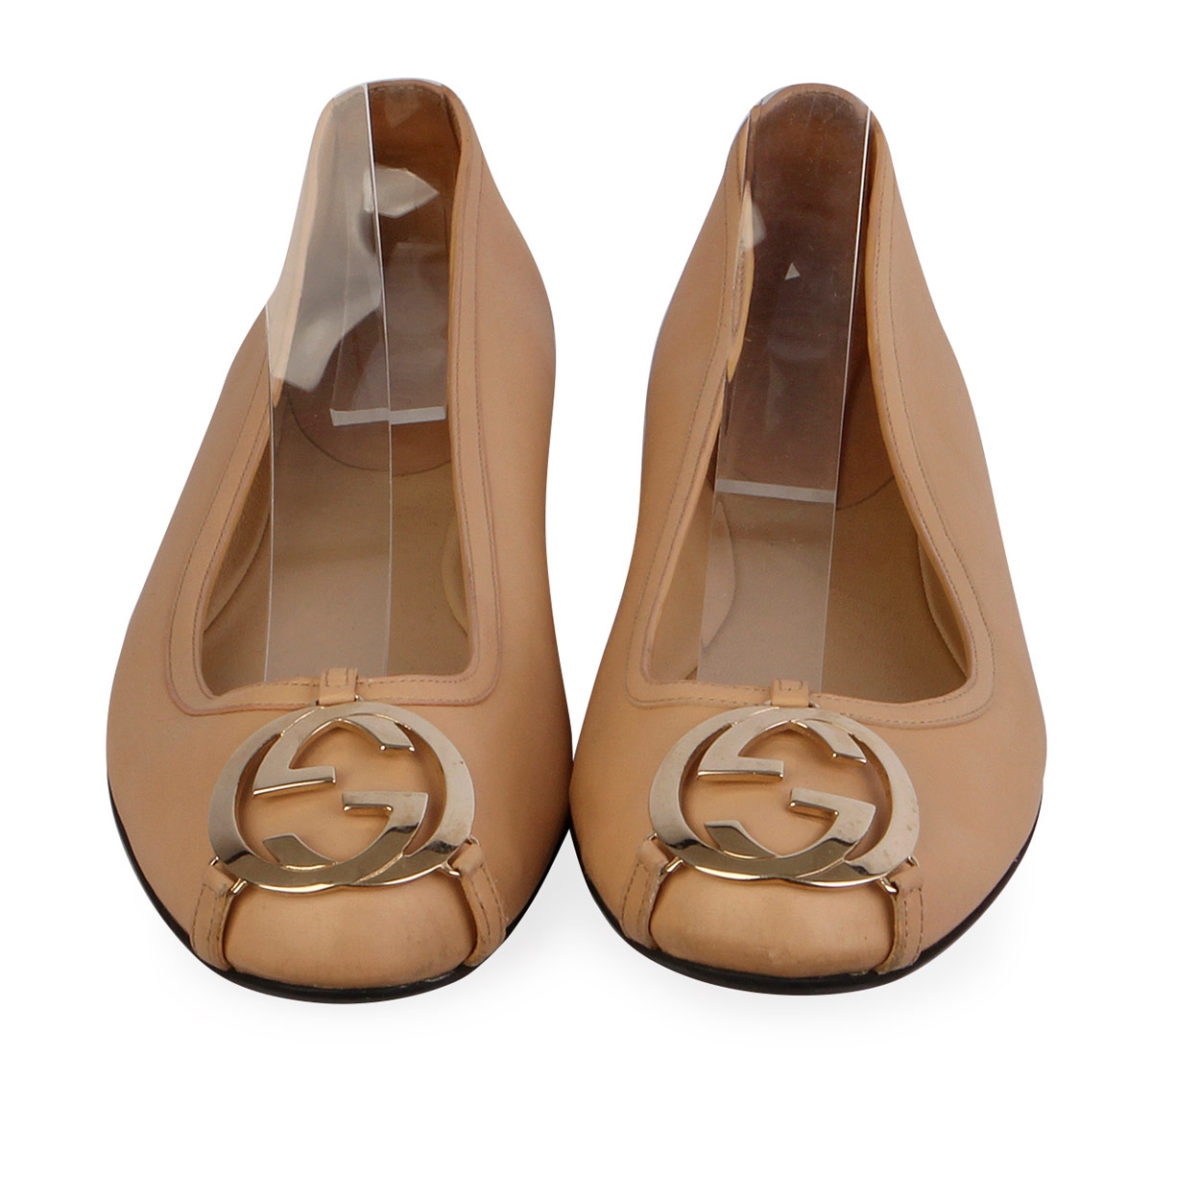 fde75063f770 GUCCI Leather GG Logo Ballerina Pumps Nude - S  36 (3.5)